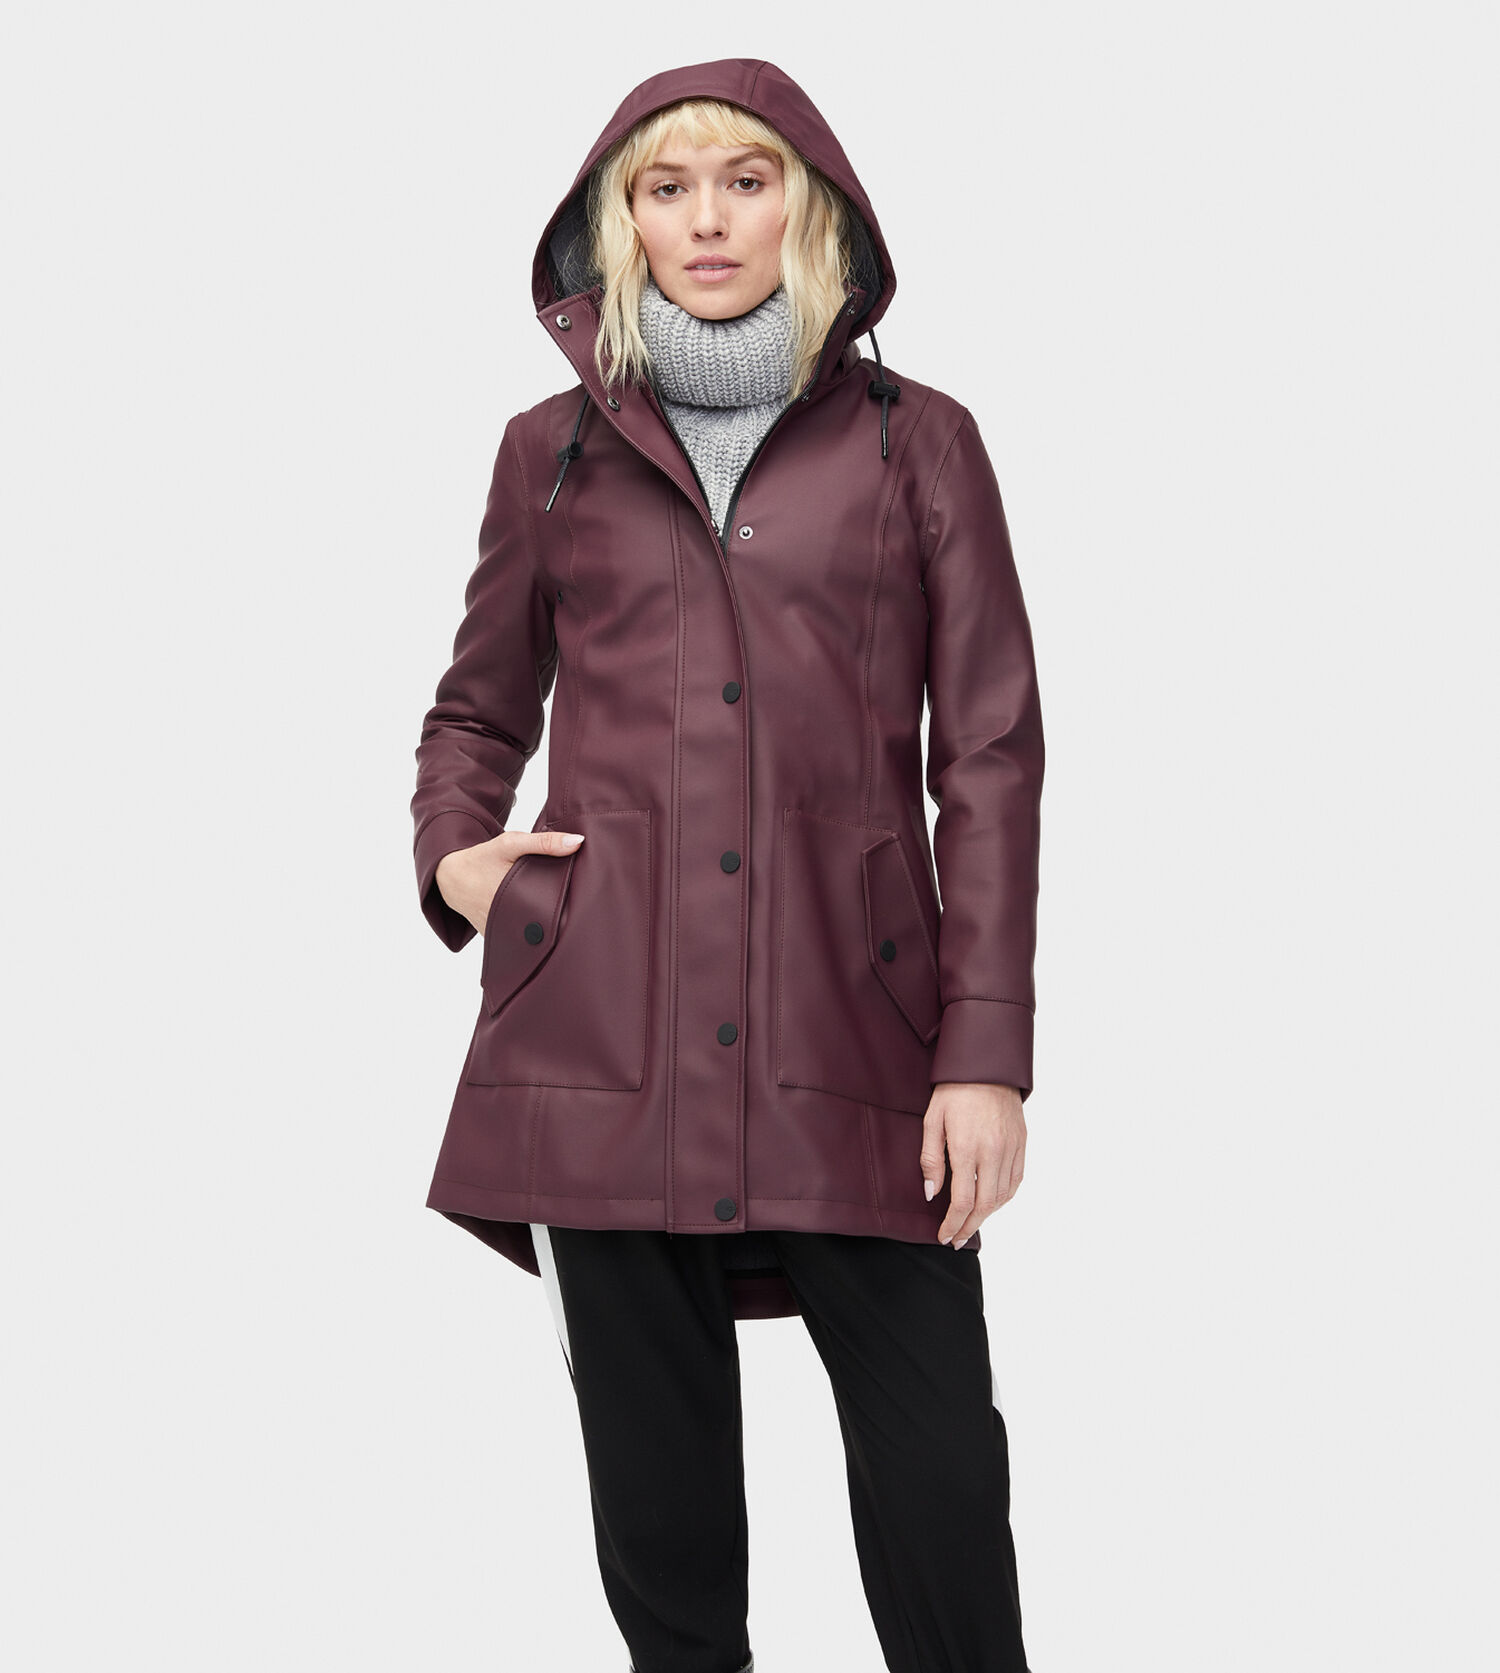 66f2b847c831 Zoom Rylie Rain Jacket - Image 4 of 4